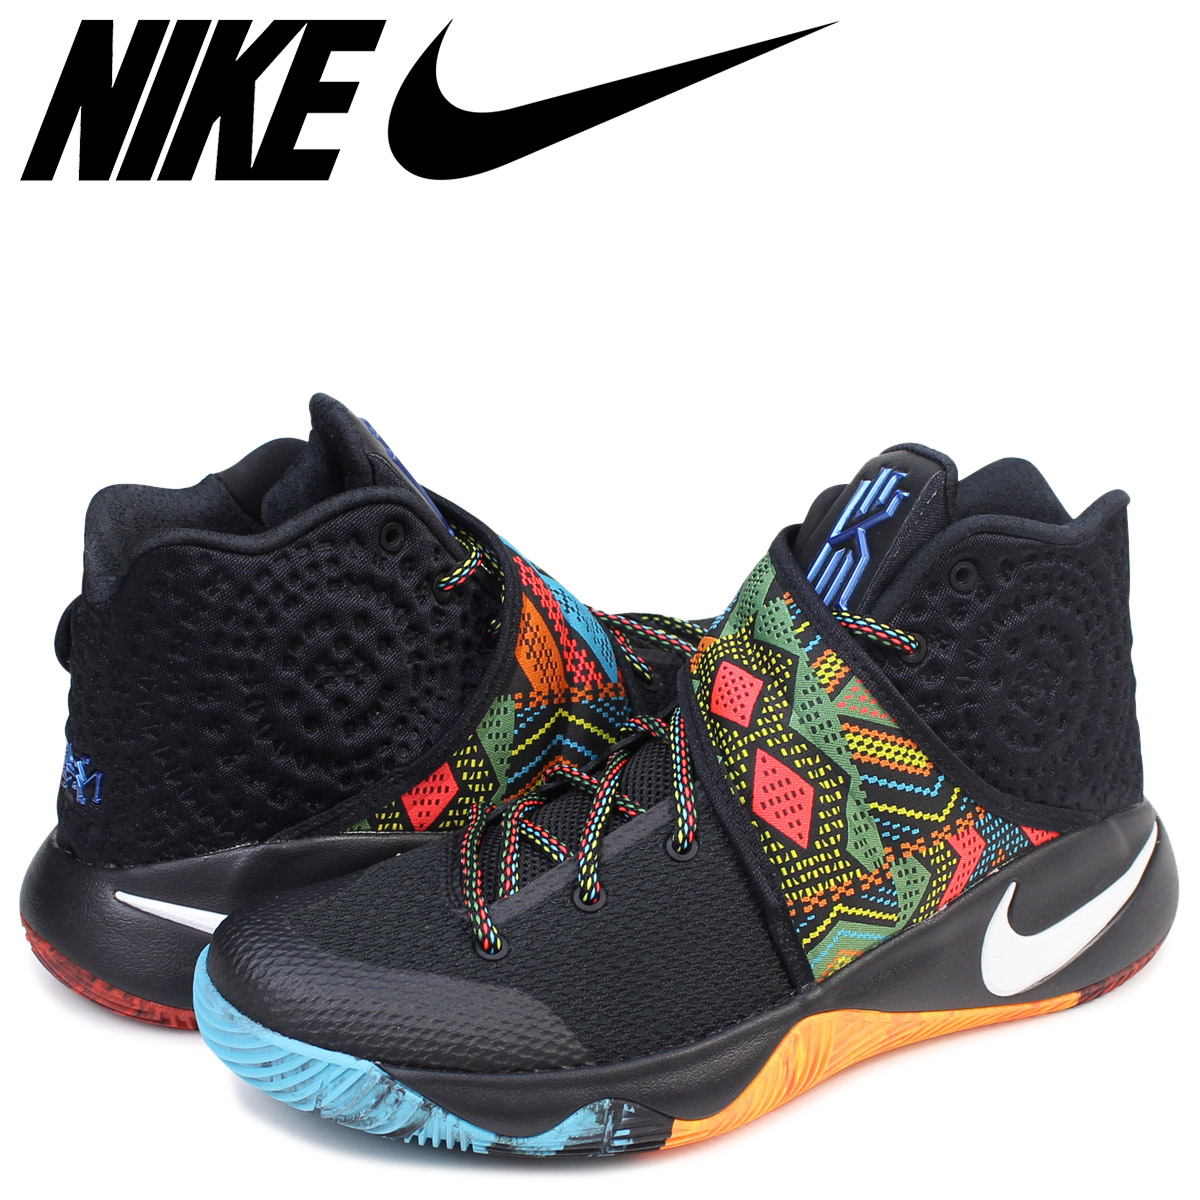 low priced 6a69f 0db00 NIKE Nike chi Lee 2 sneakers KYRIE 2 EP BHM men 828,376-099 shoes black  black